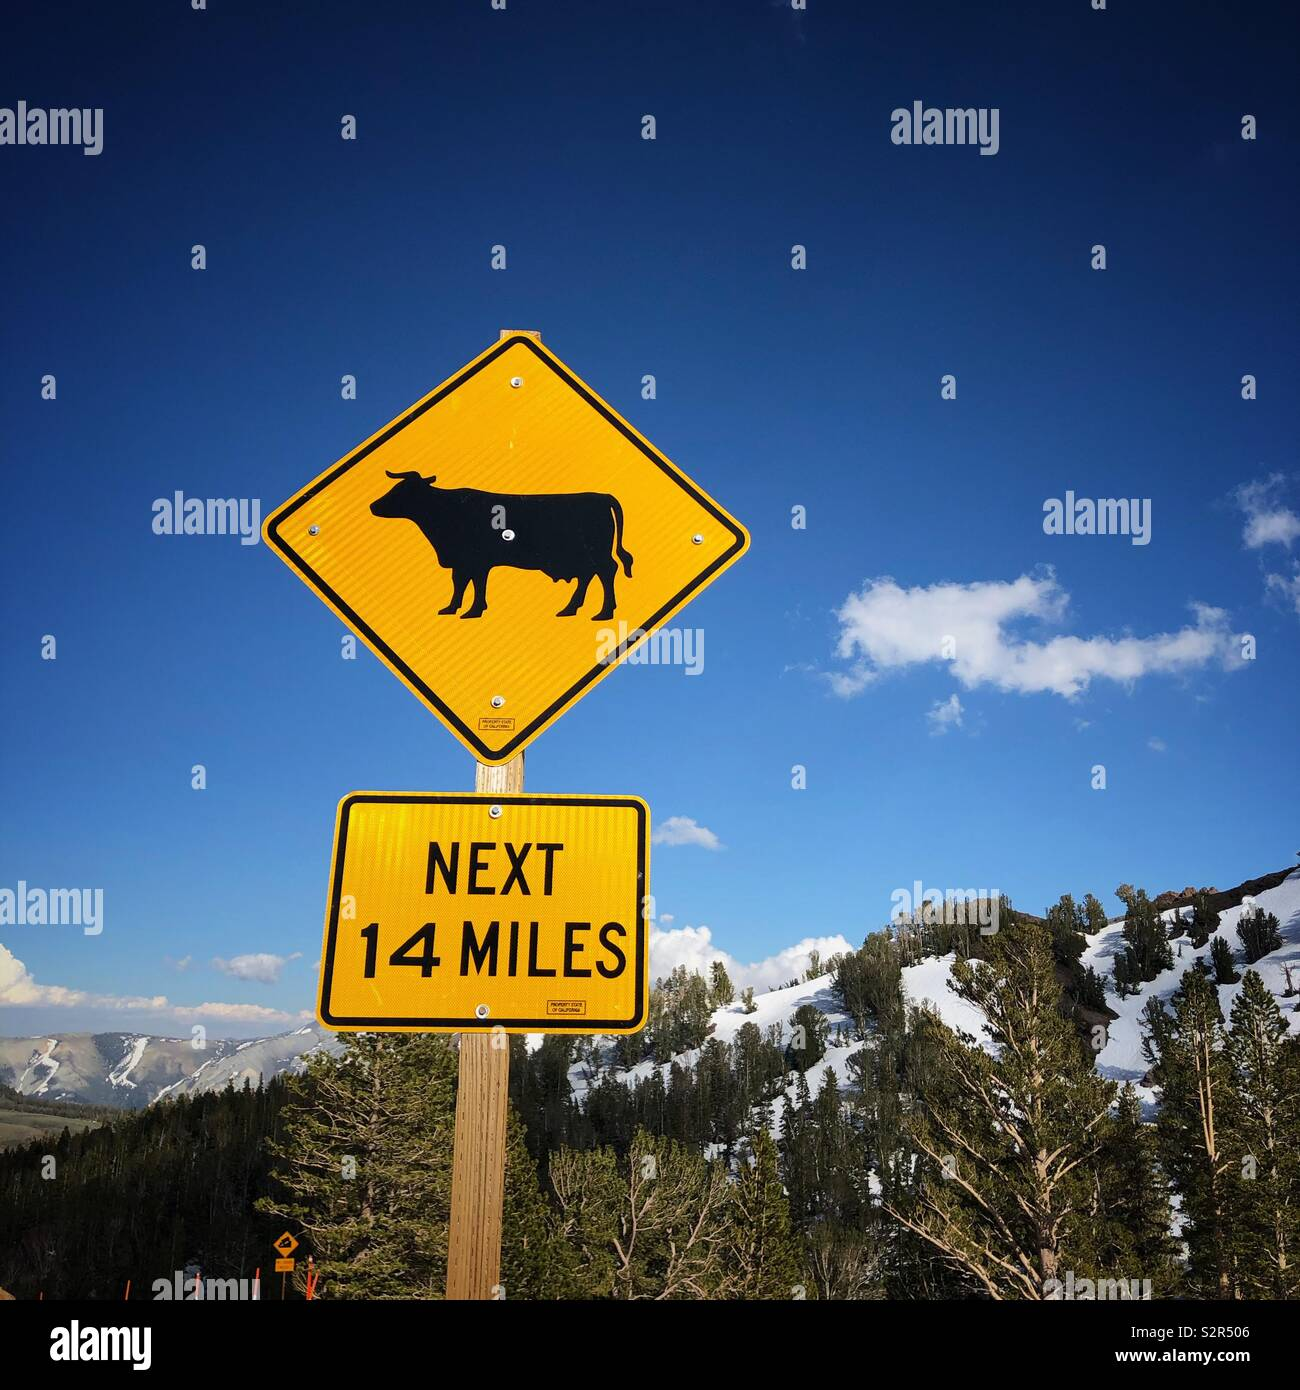 Don't hit the cows! Found at the top of Sonora Pass on Highway 108 in the California Sierras. Stock Photo